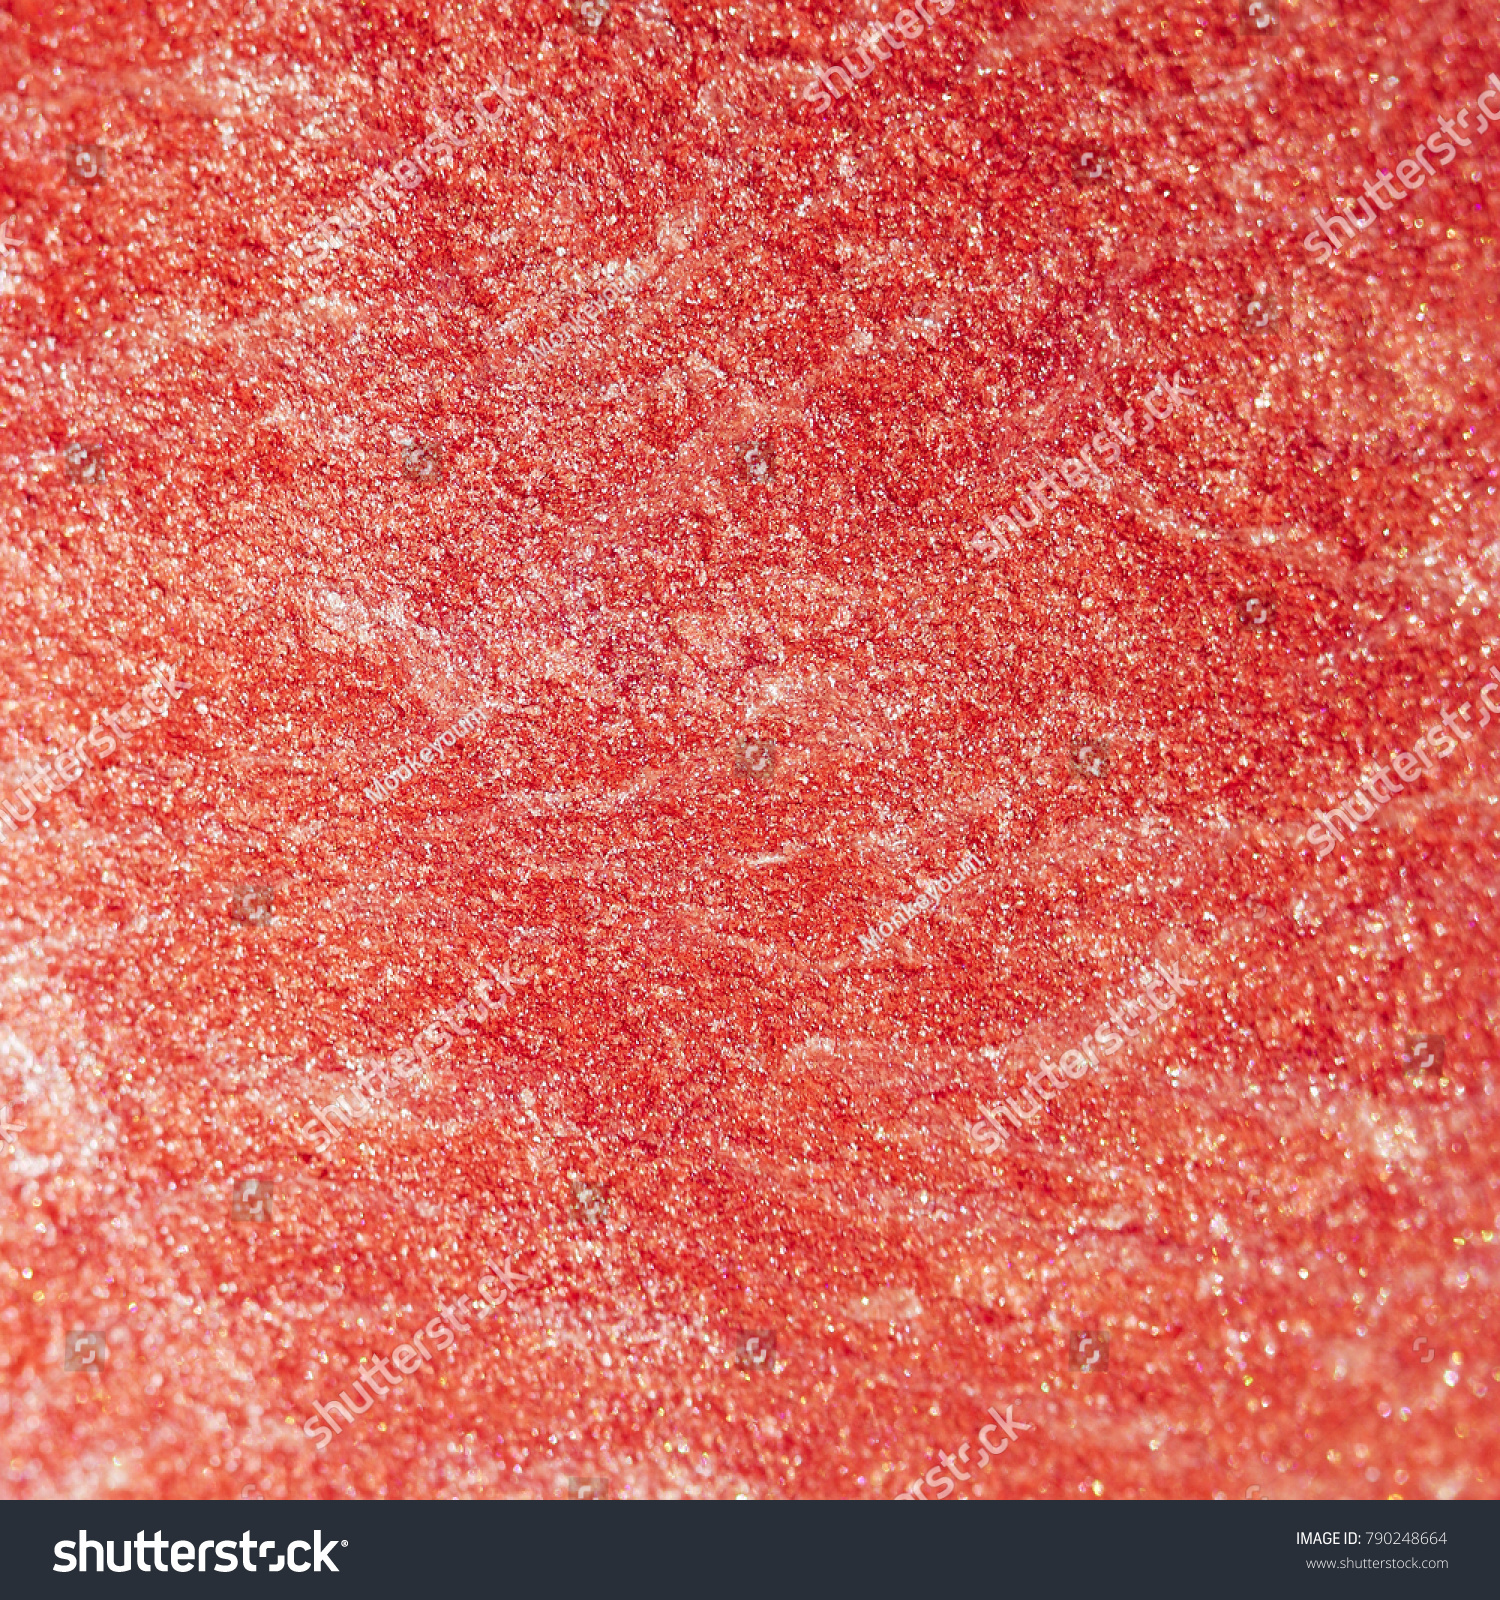 closeup of crushed blush in pink color pattern shard  #790248664